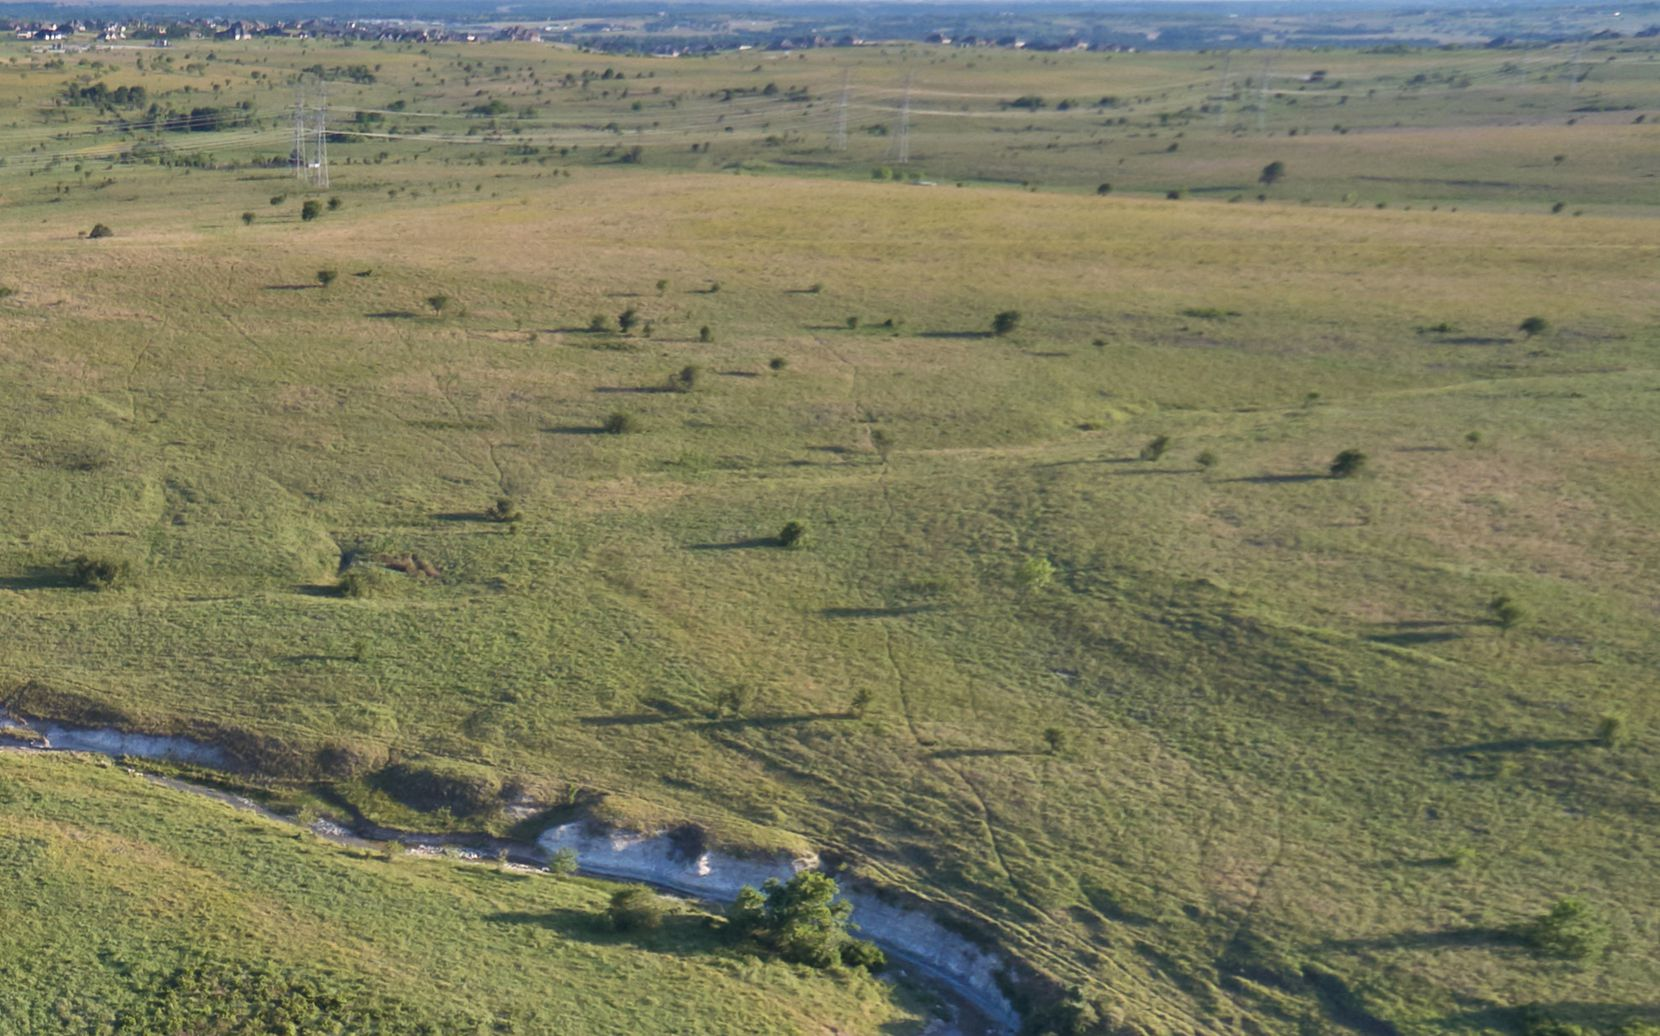 When Veale Ranch was offered for sale in 2017, it had an asking price of $95 million. Terms of the just-completed sale weren't disclosed.